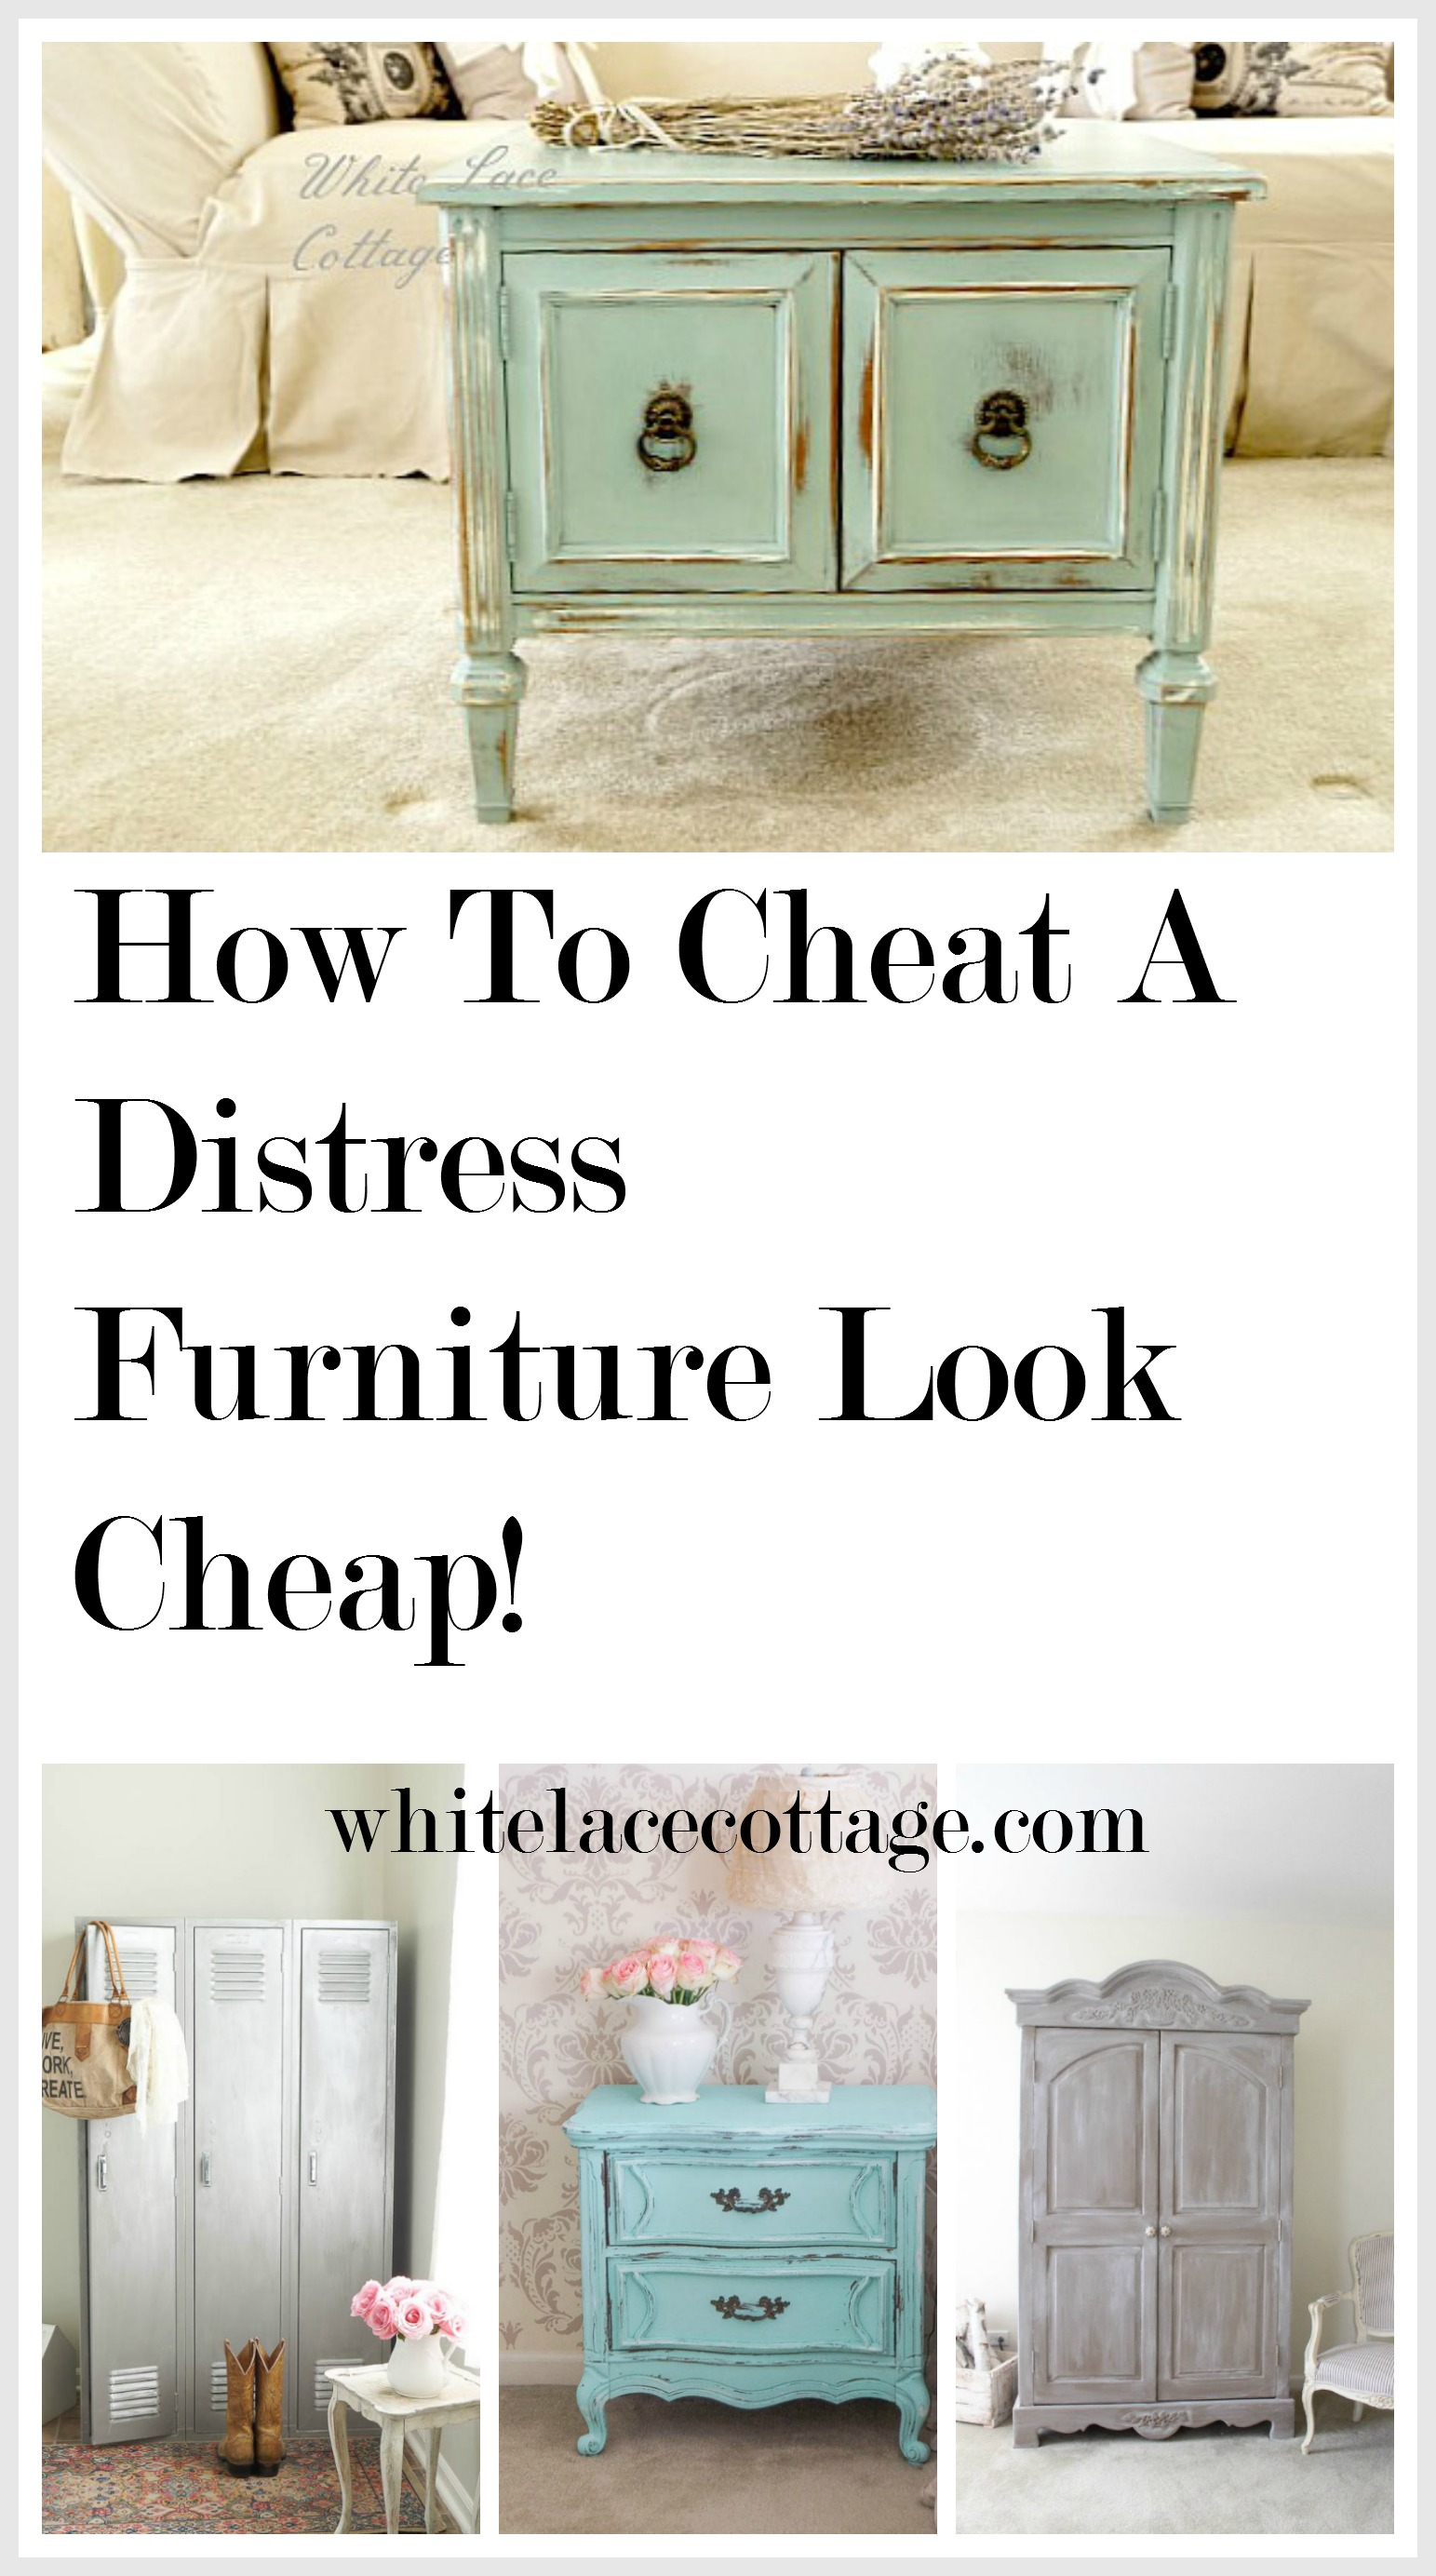 How To Cheat A Distress Furniture Look Cheap Anne P Makeup And More